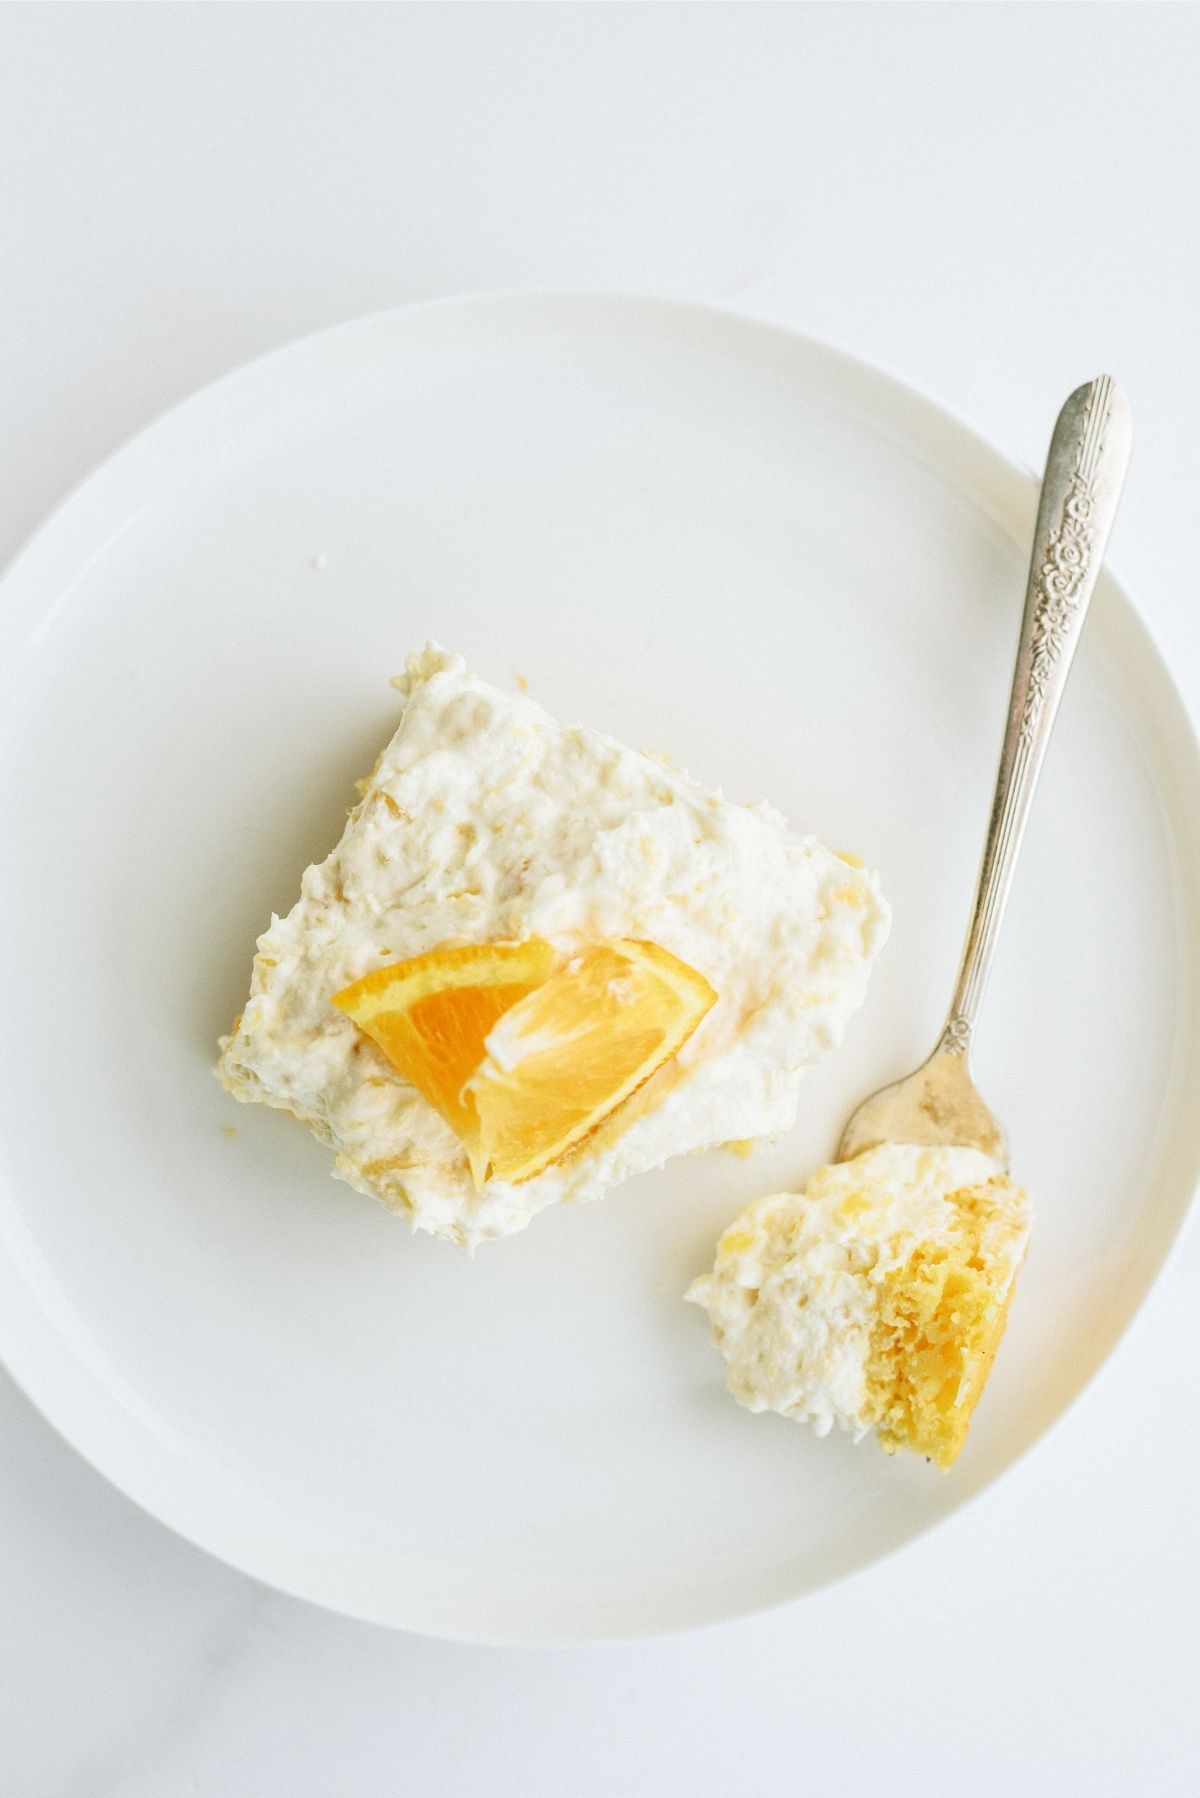 A slice of Pineapple Orange Cake Recipe (Pig Pickin' Cake) on a white plate with a fork